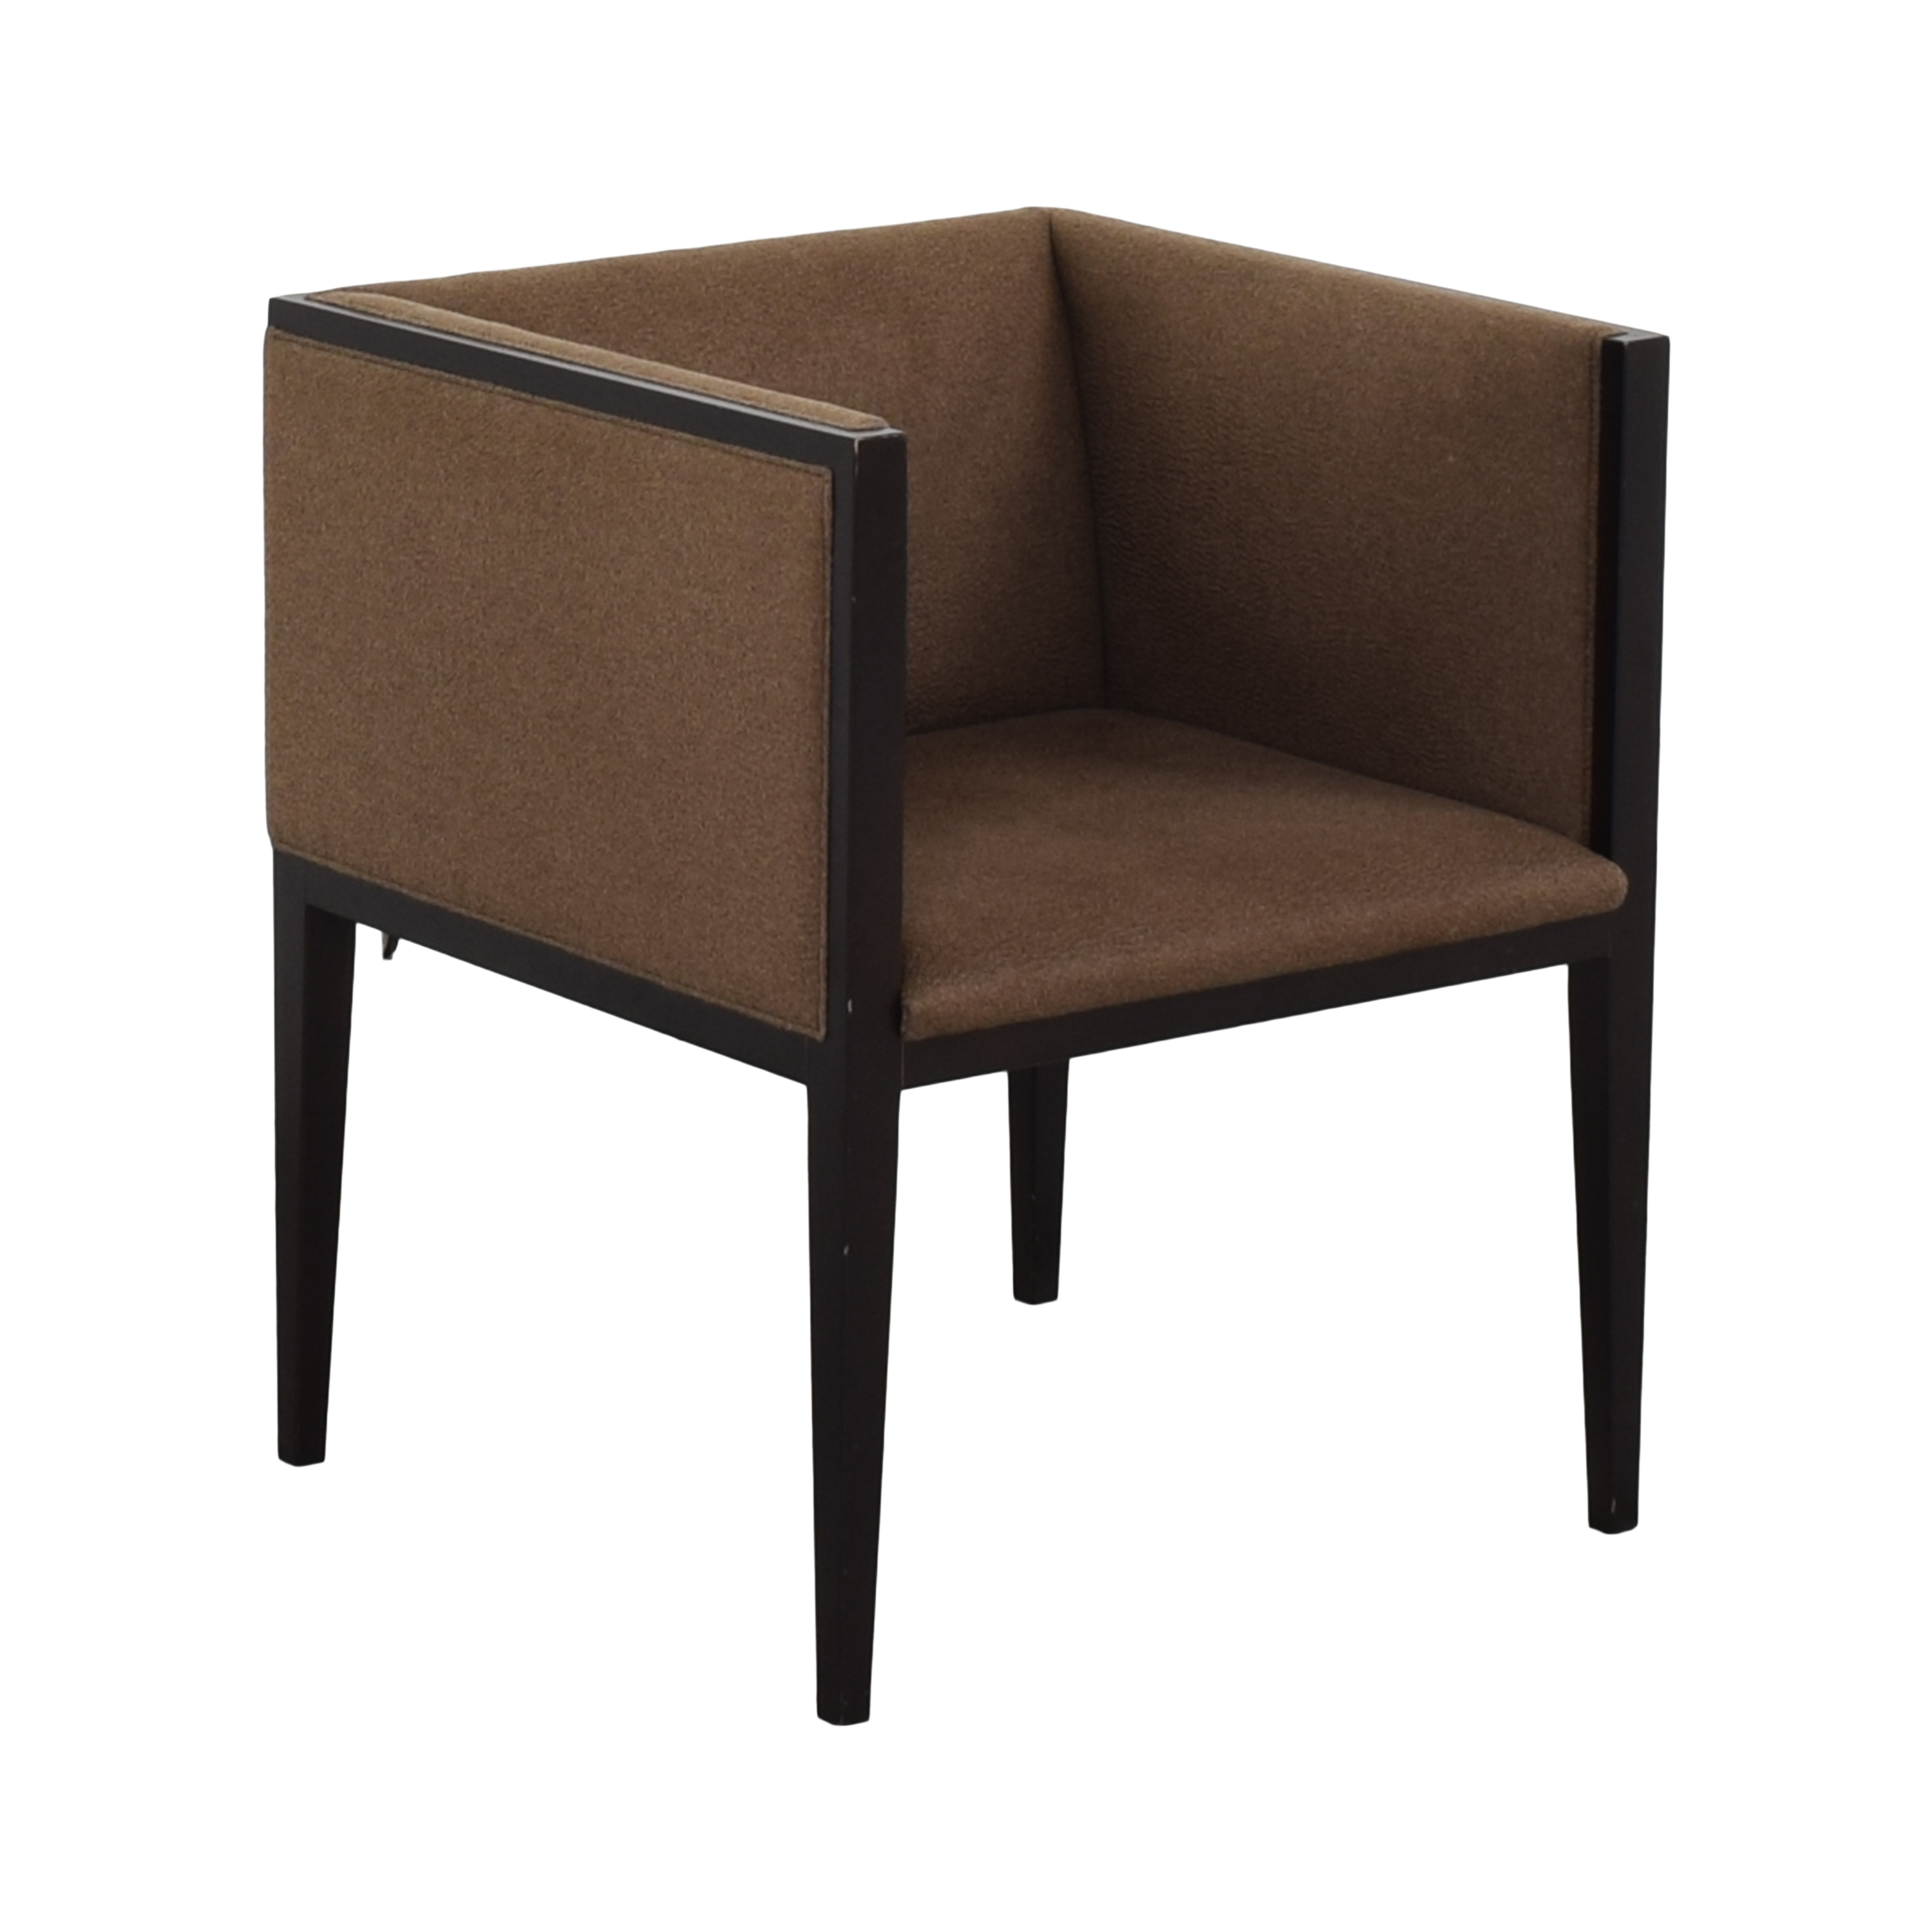 Hudson Furniture & Bedding Hudson Furniture & Bedding Contemporary Dining Chair Chairs